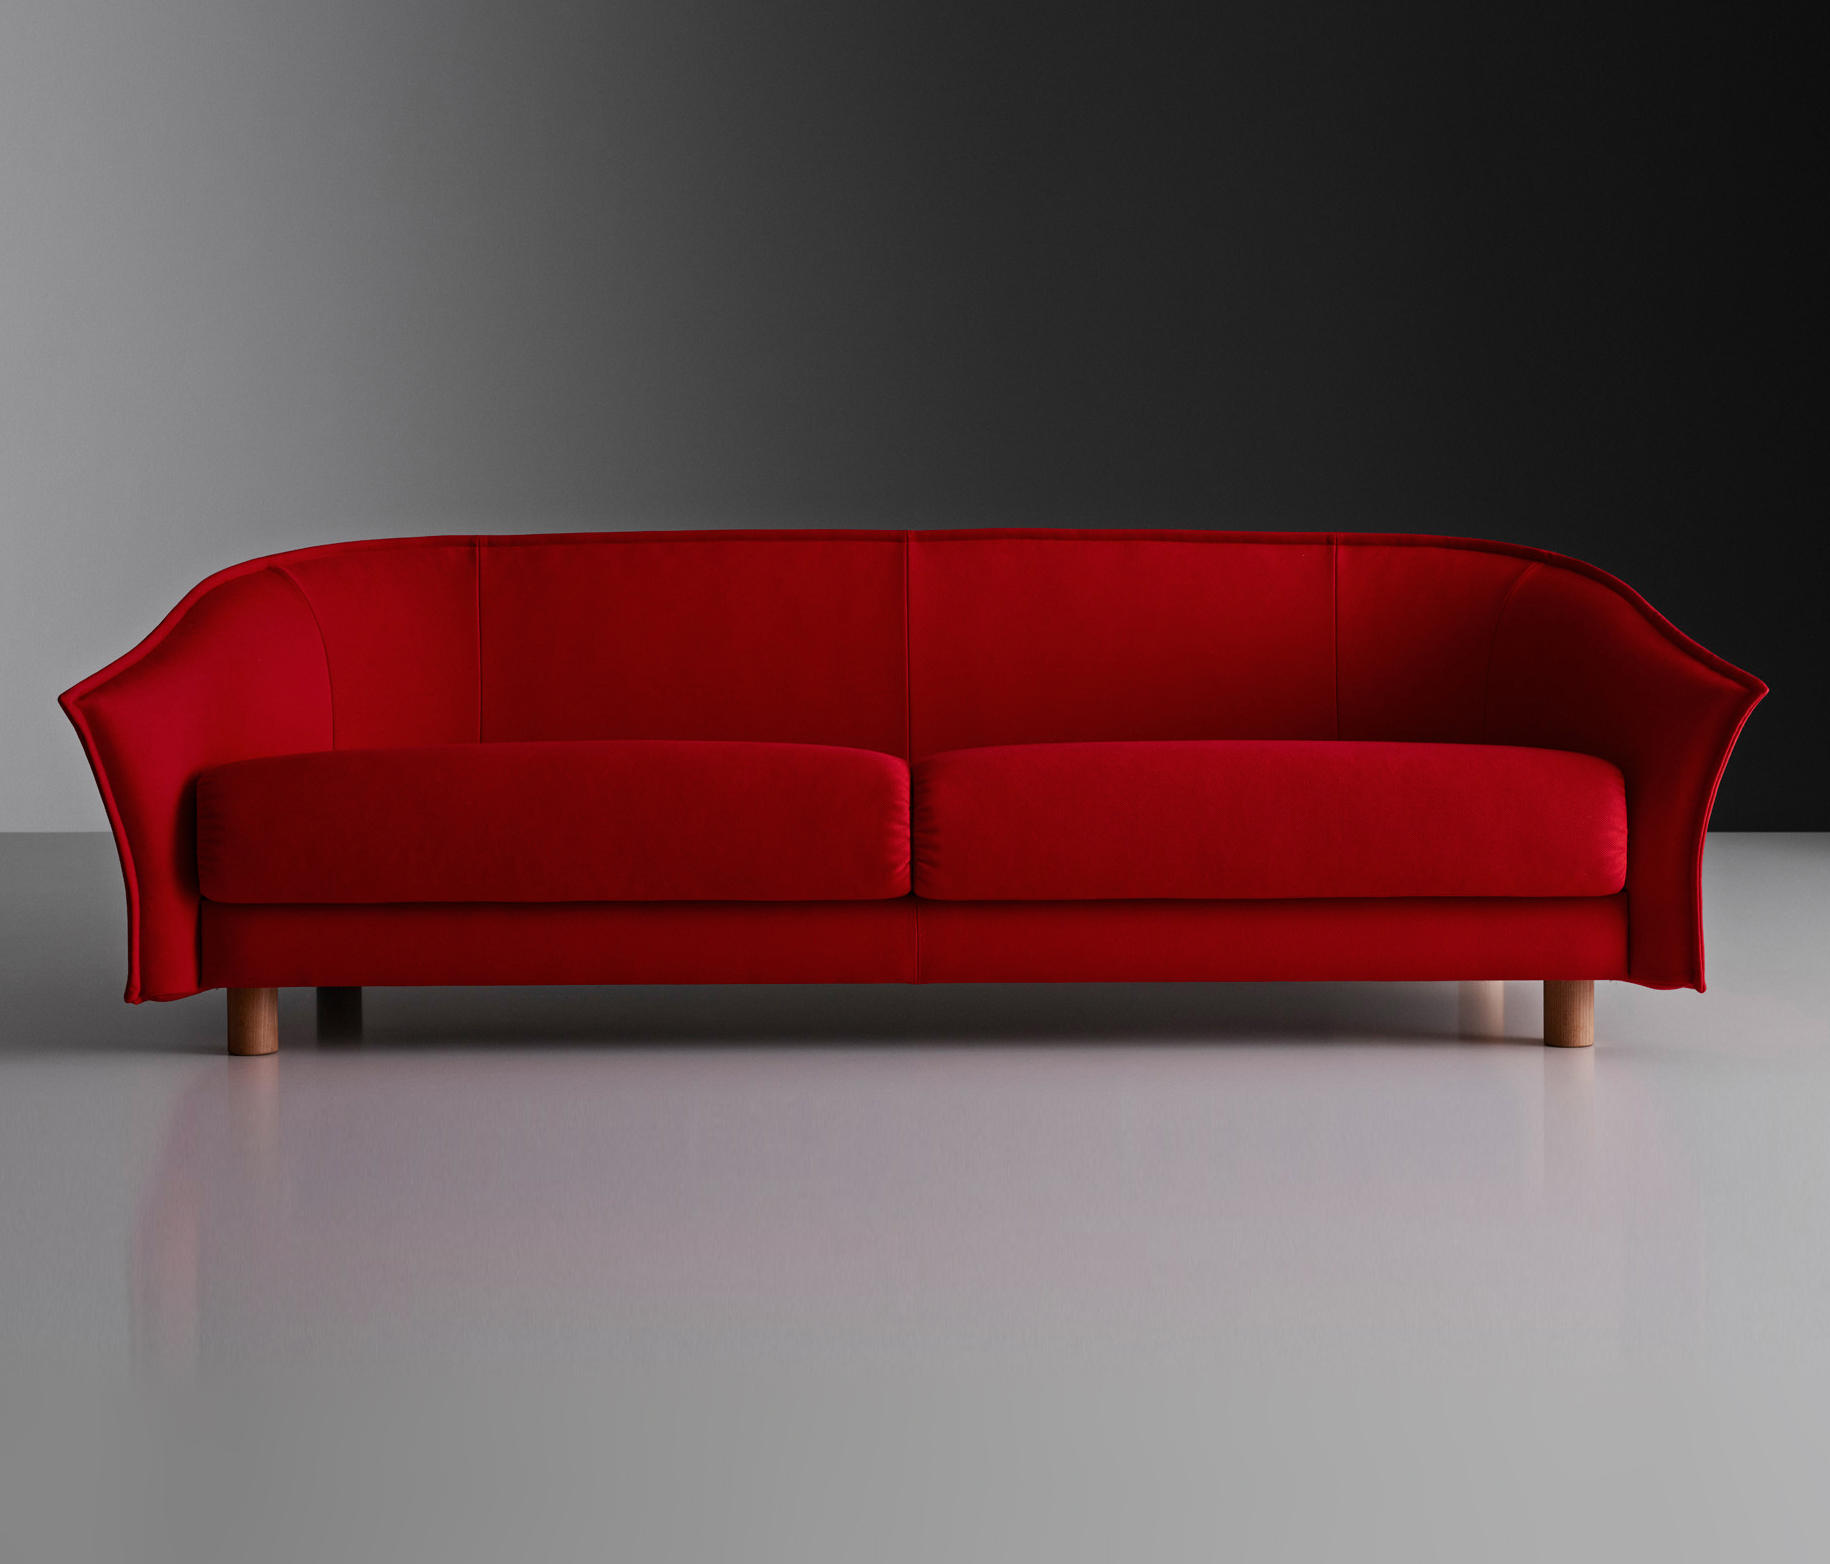 Sofa Trondheim Elegant Monte Sofa By Stouby Monte Sofa By Stouby With Sofa Trondheim Cheap